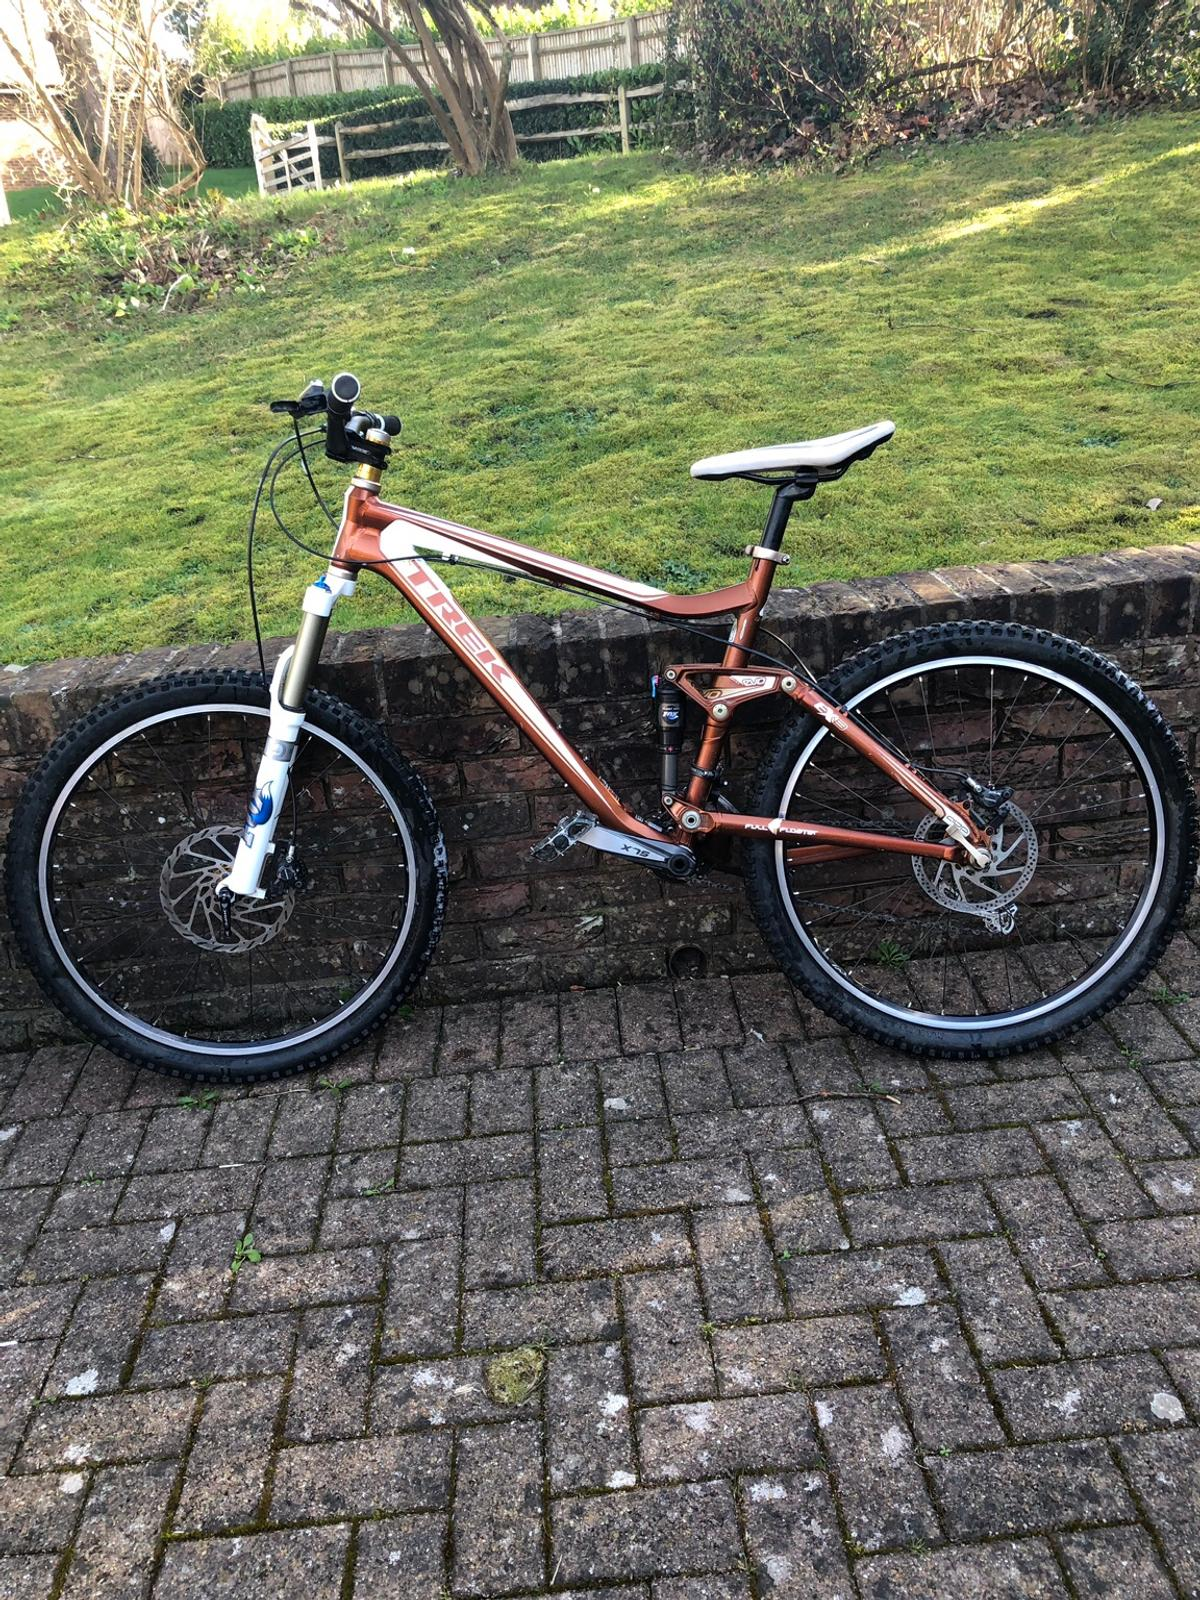 trek evo ex 8 full suspension mountain bike  in KT20